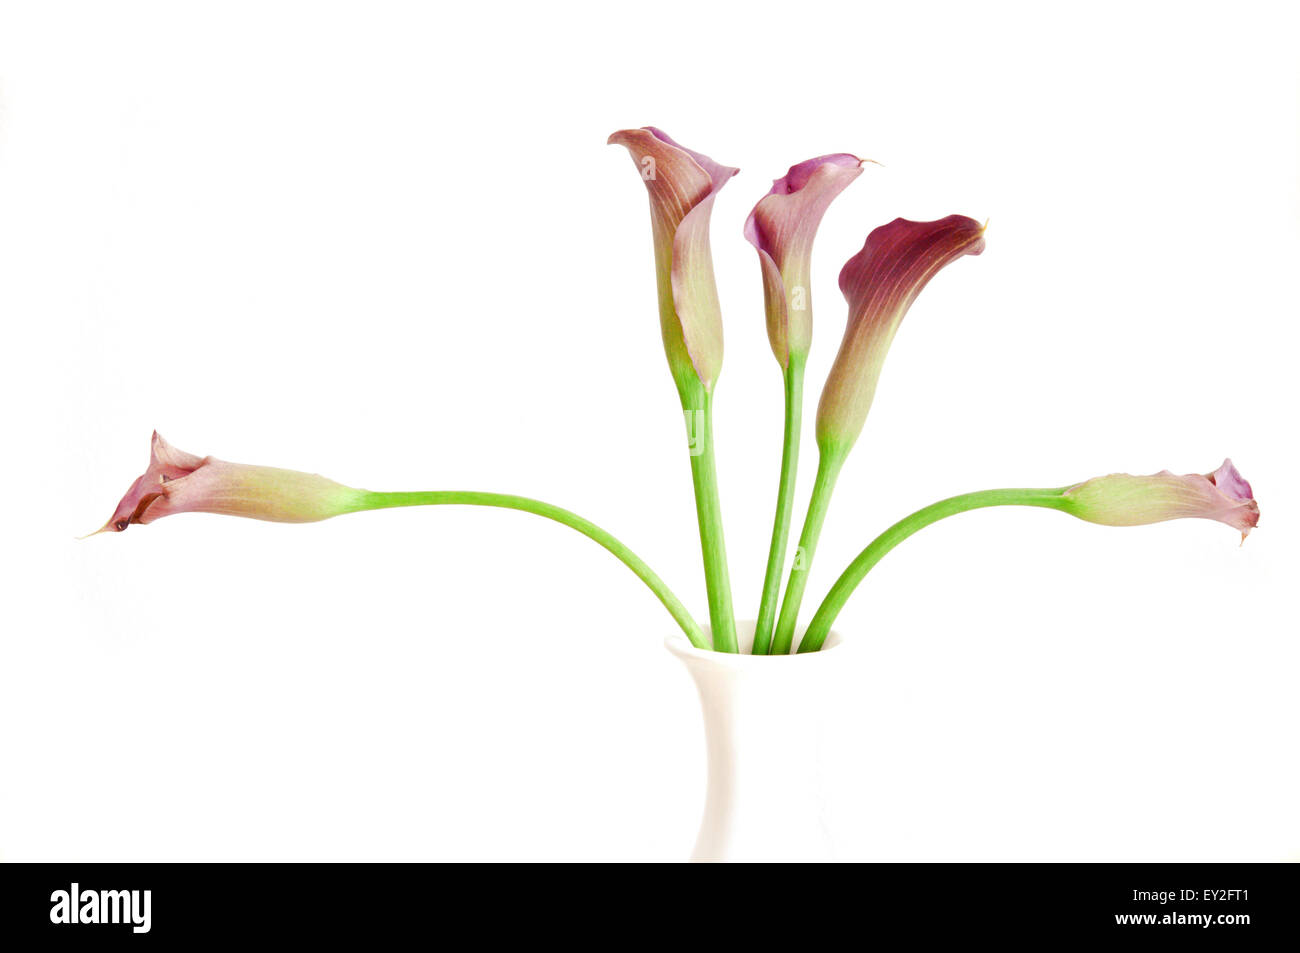 decaying Calla flowers in a white vase against a white wall - Stock Image